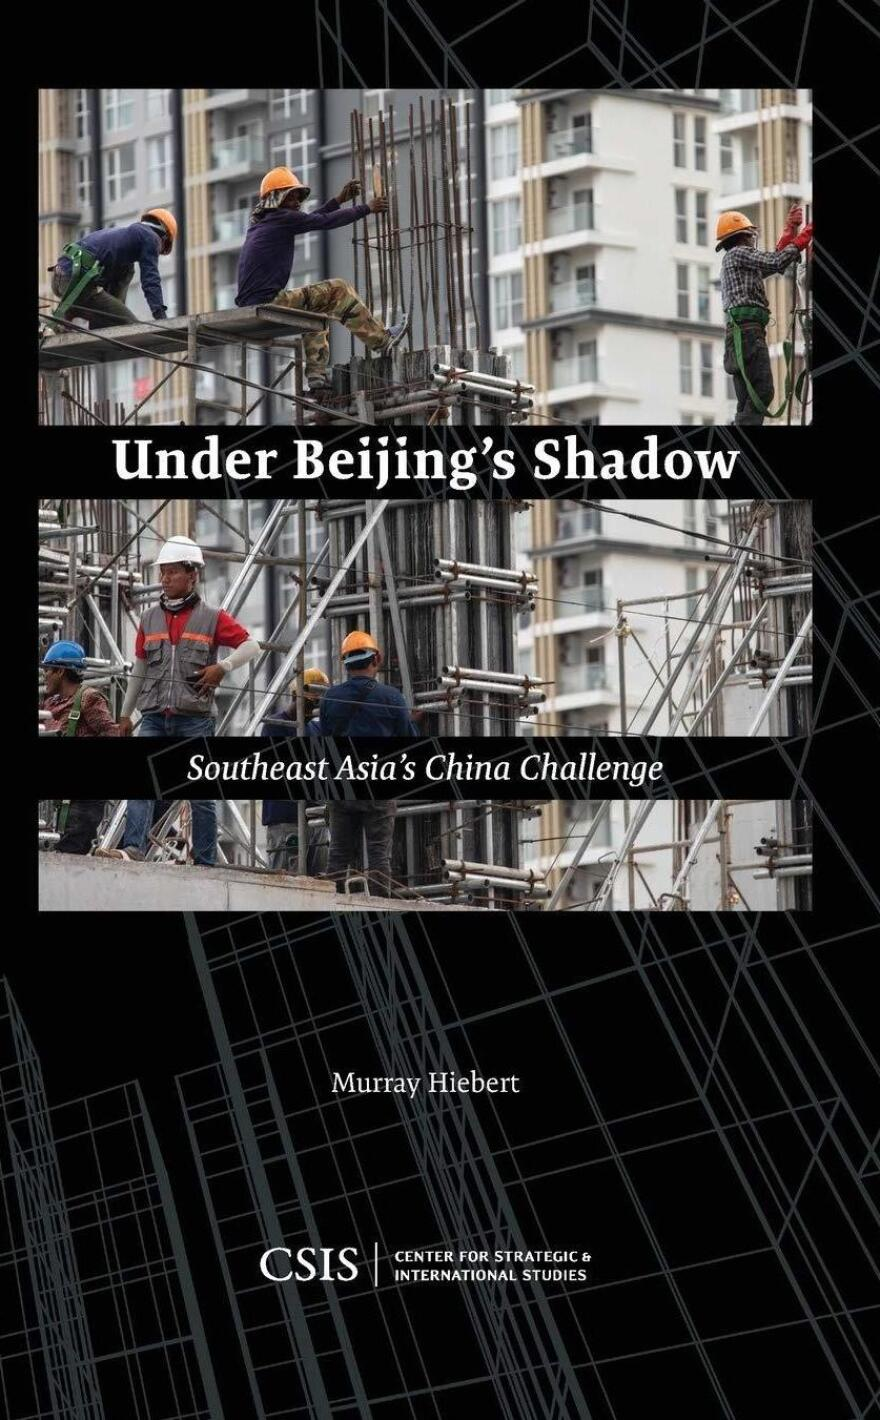 <em>Under Beijing's Shadow: Southeast Asia's China Challenge</em>, by Murray Hiebert